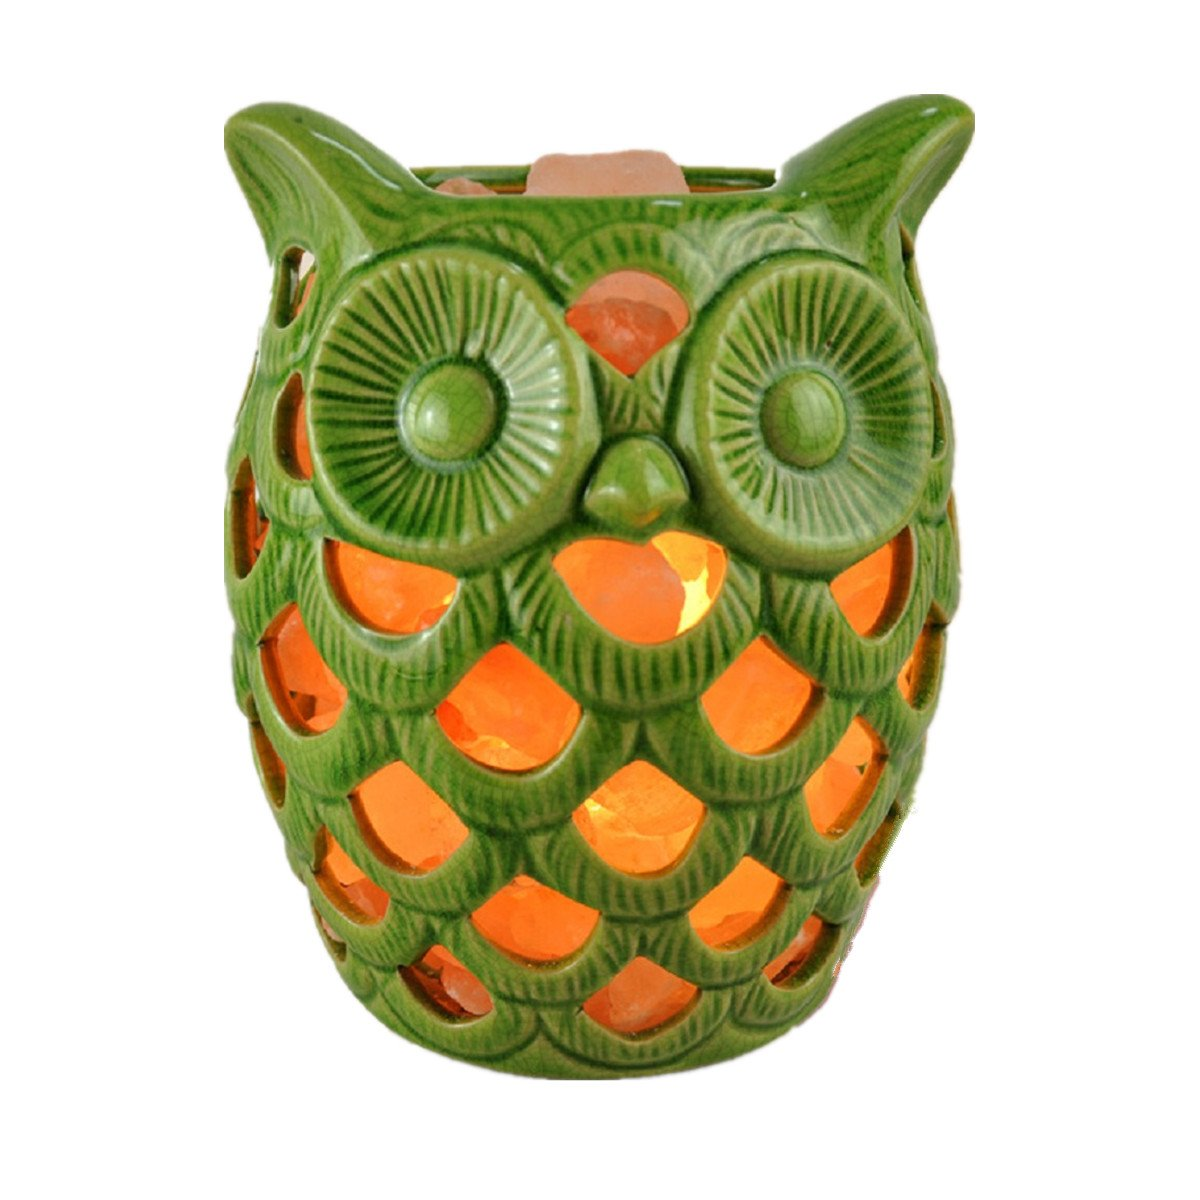 Owl Salt Lamp Himalayan Salt Lamp with Rock Salt, Crystal Rocks Lamp with Hollowed-Out Ceramic Jar+Brightness Dimmable Control,UL Approved,Birthday Gifts(7lb) (Green)